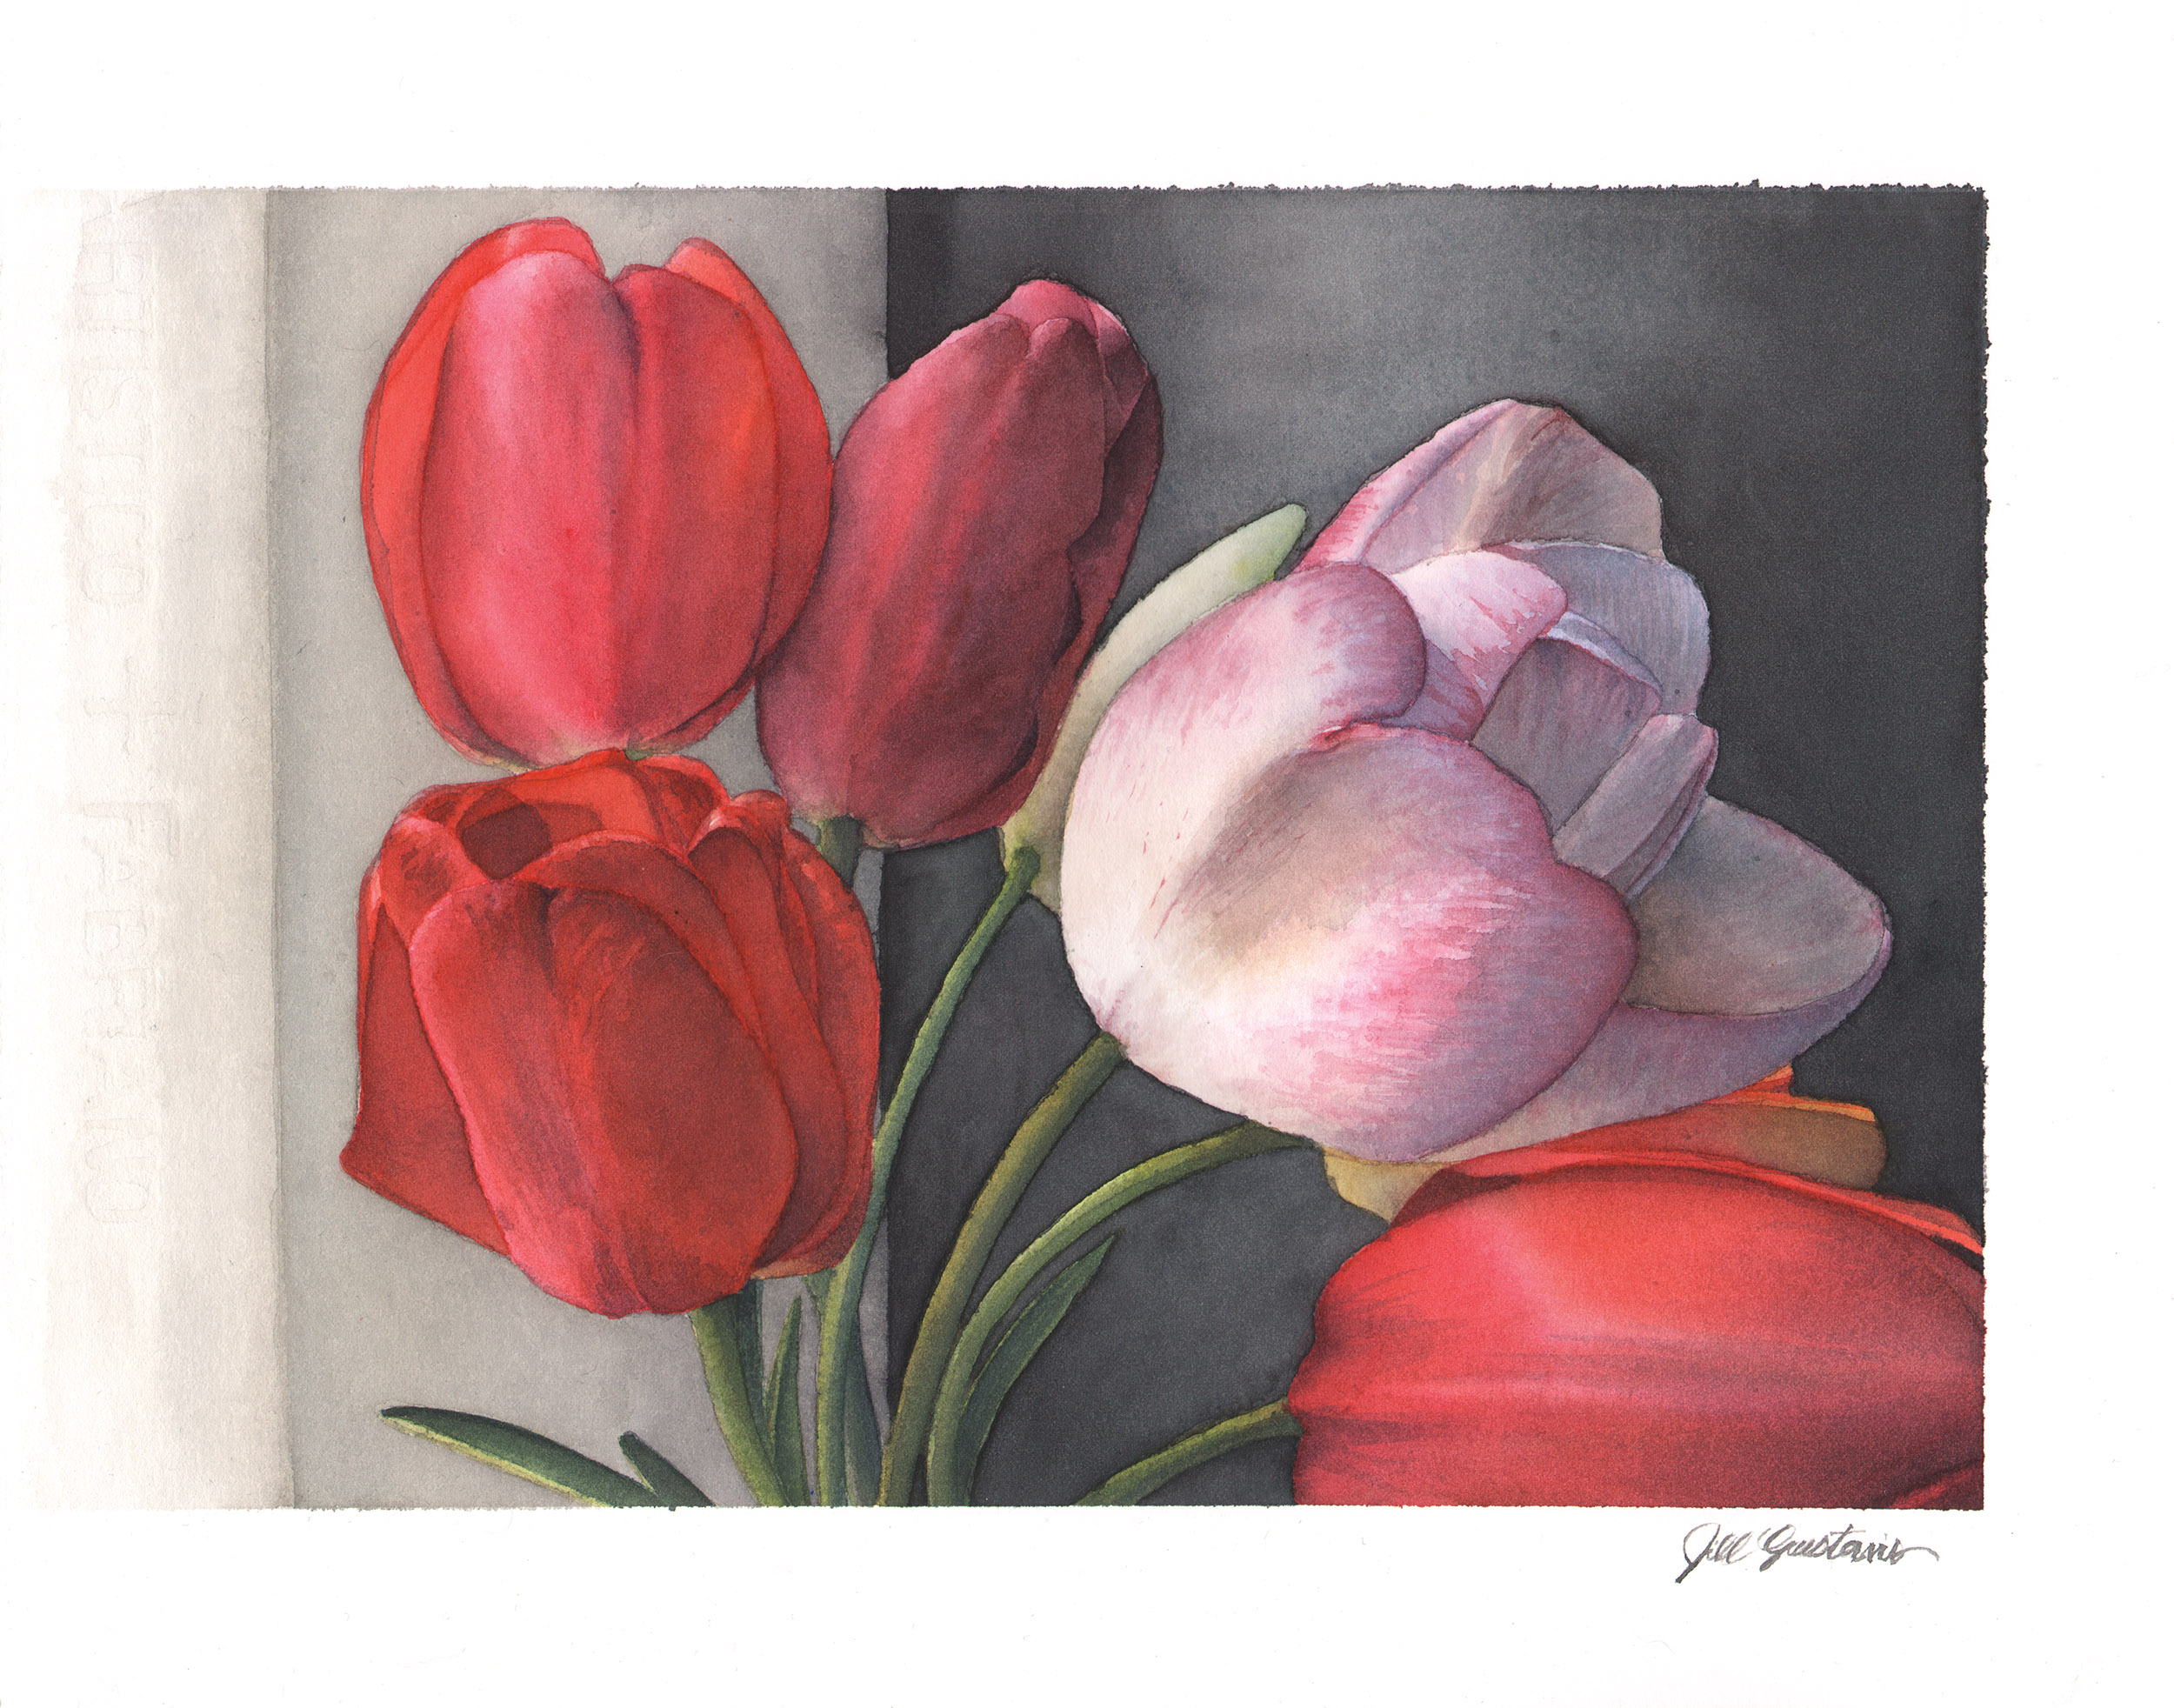 Tulips by the Window